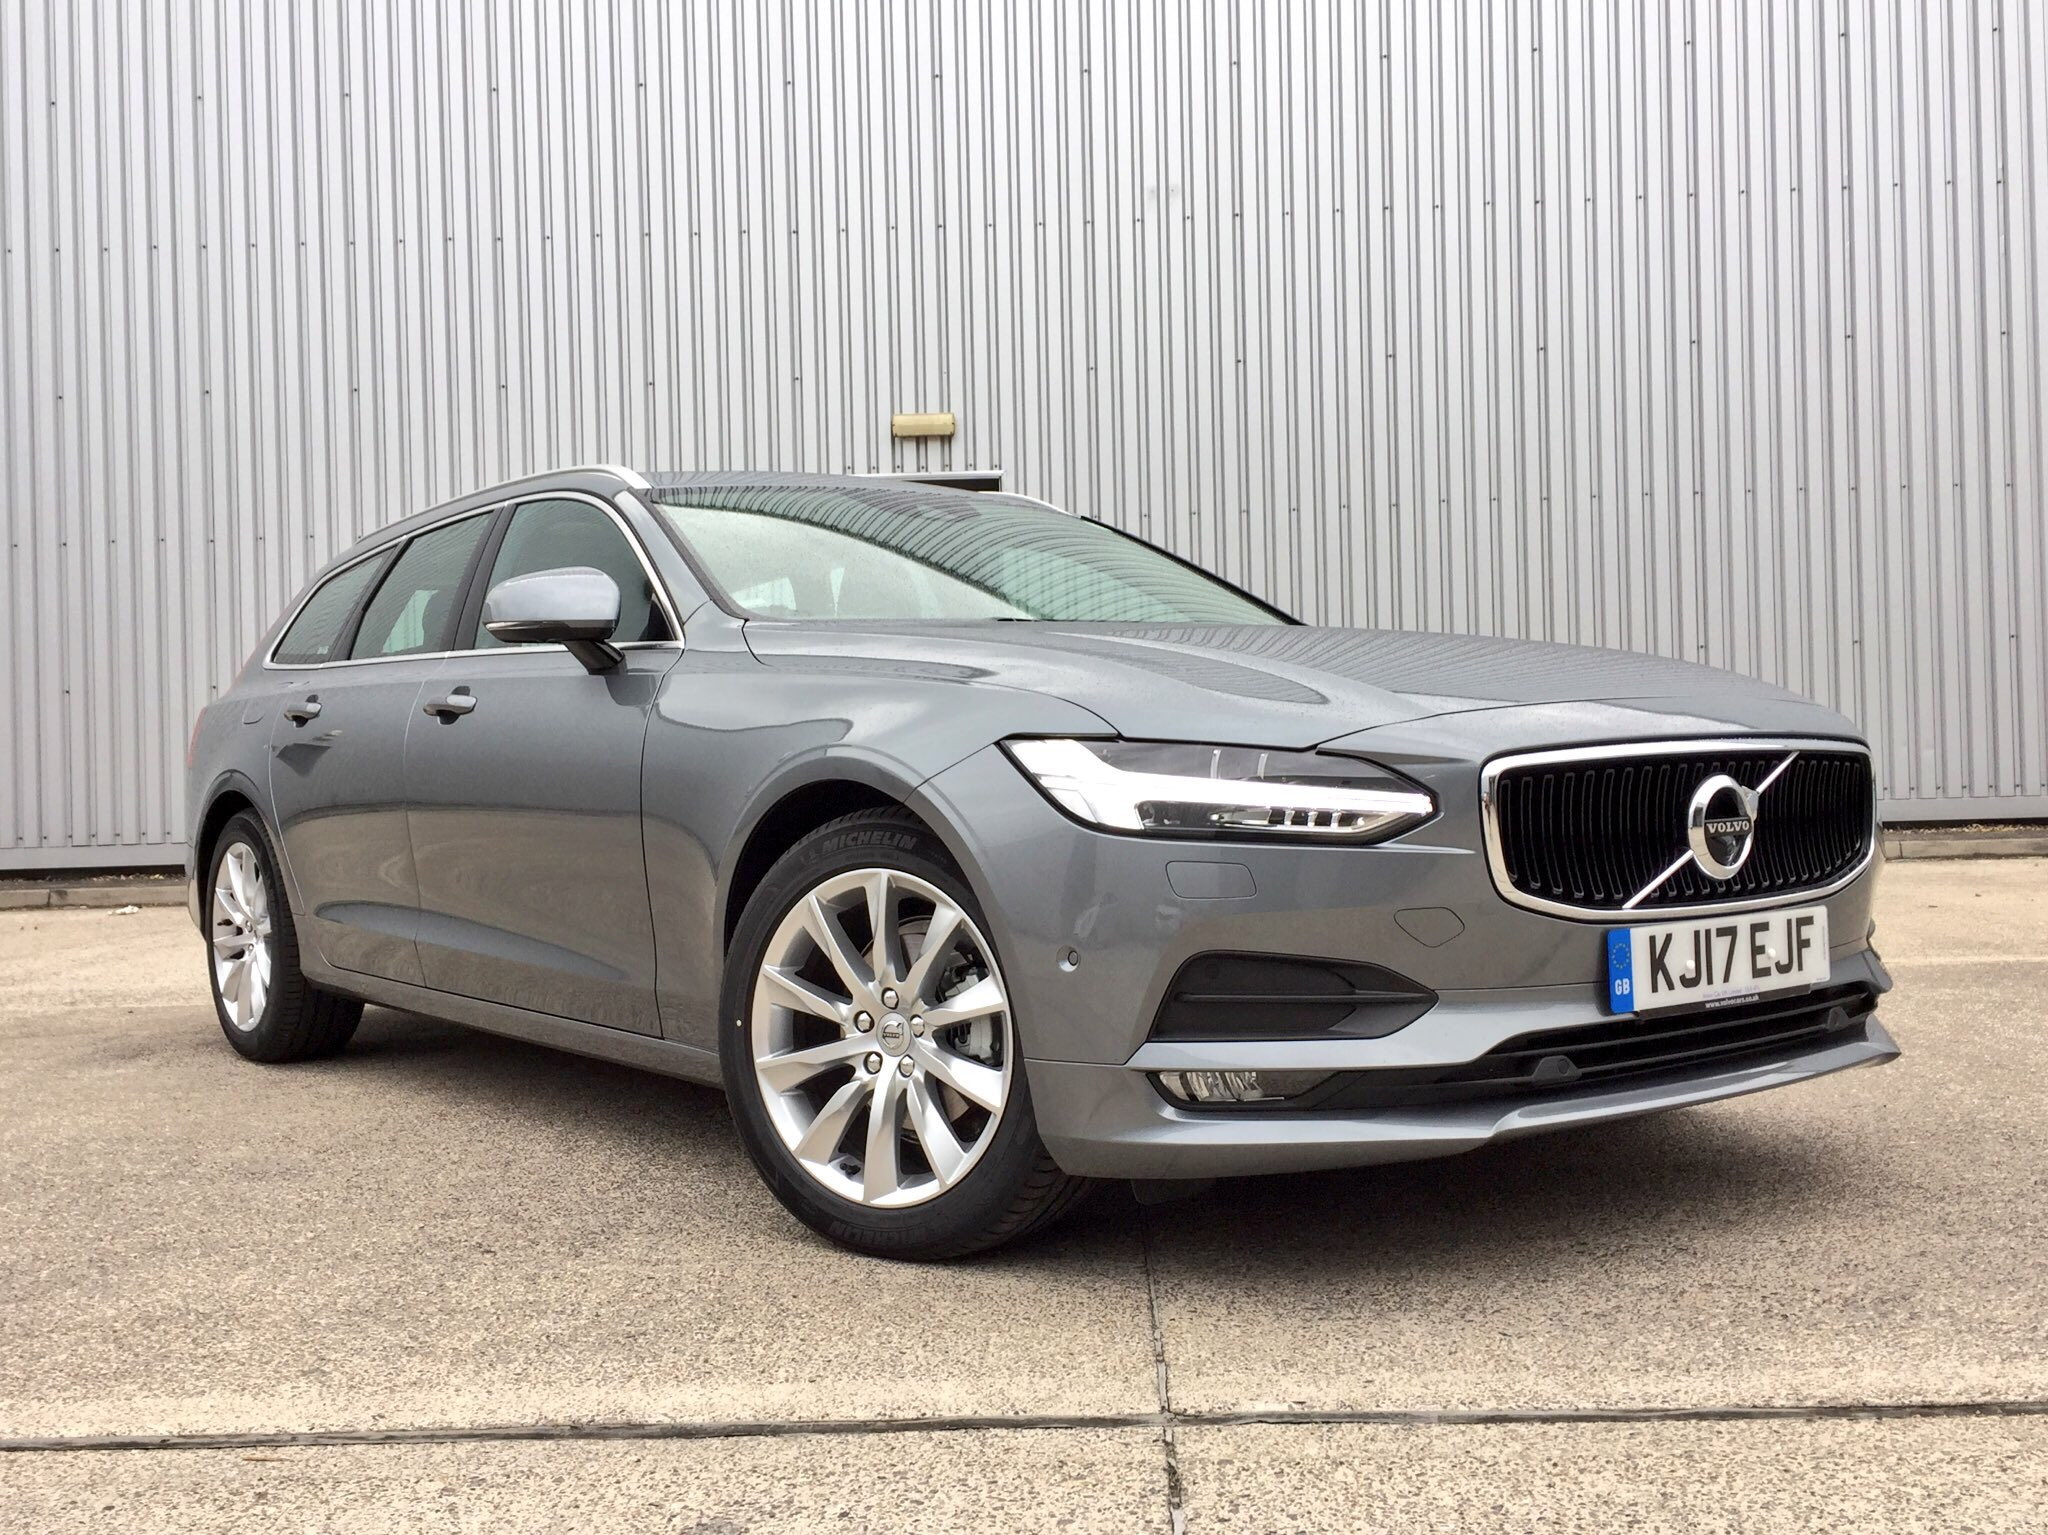 Our week with the Volvo V90 D4 comes to an end. All in all a pleasurable experience it must be said and indicated 50.2mpg isn't bad either. https://t.co/1WZQpp11iy